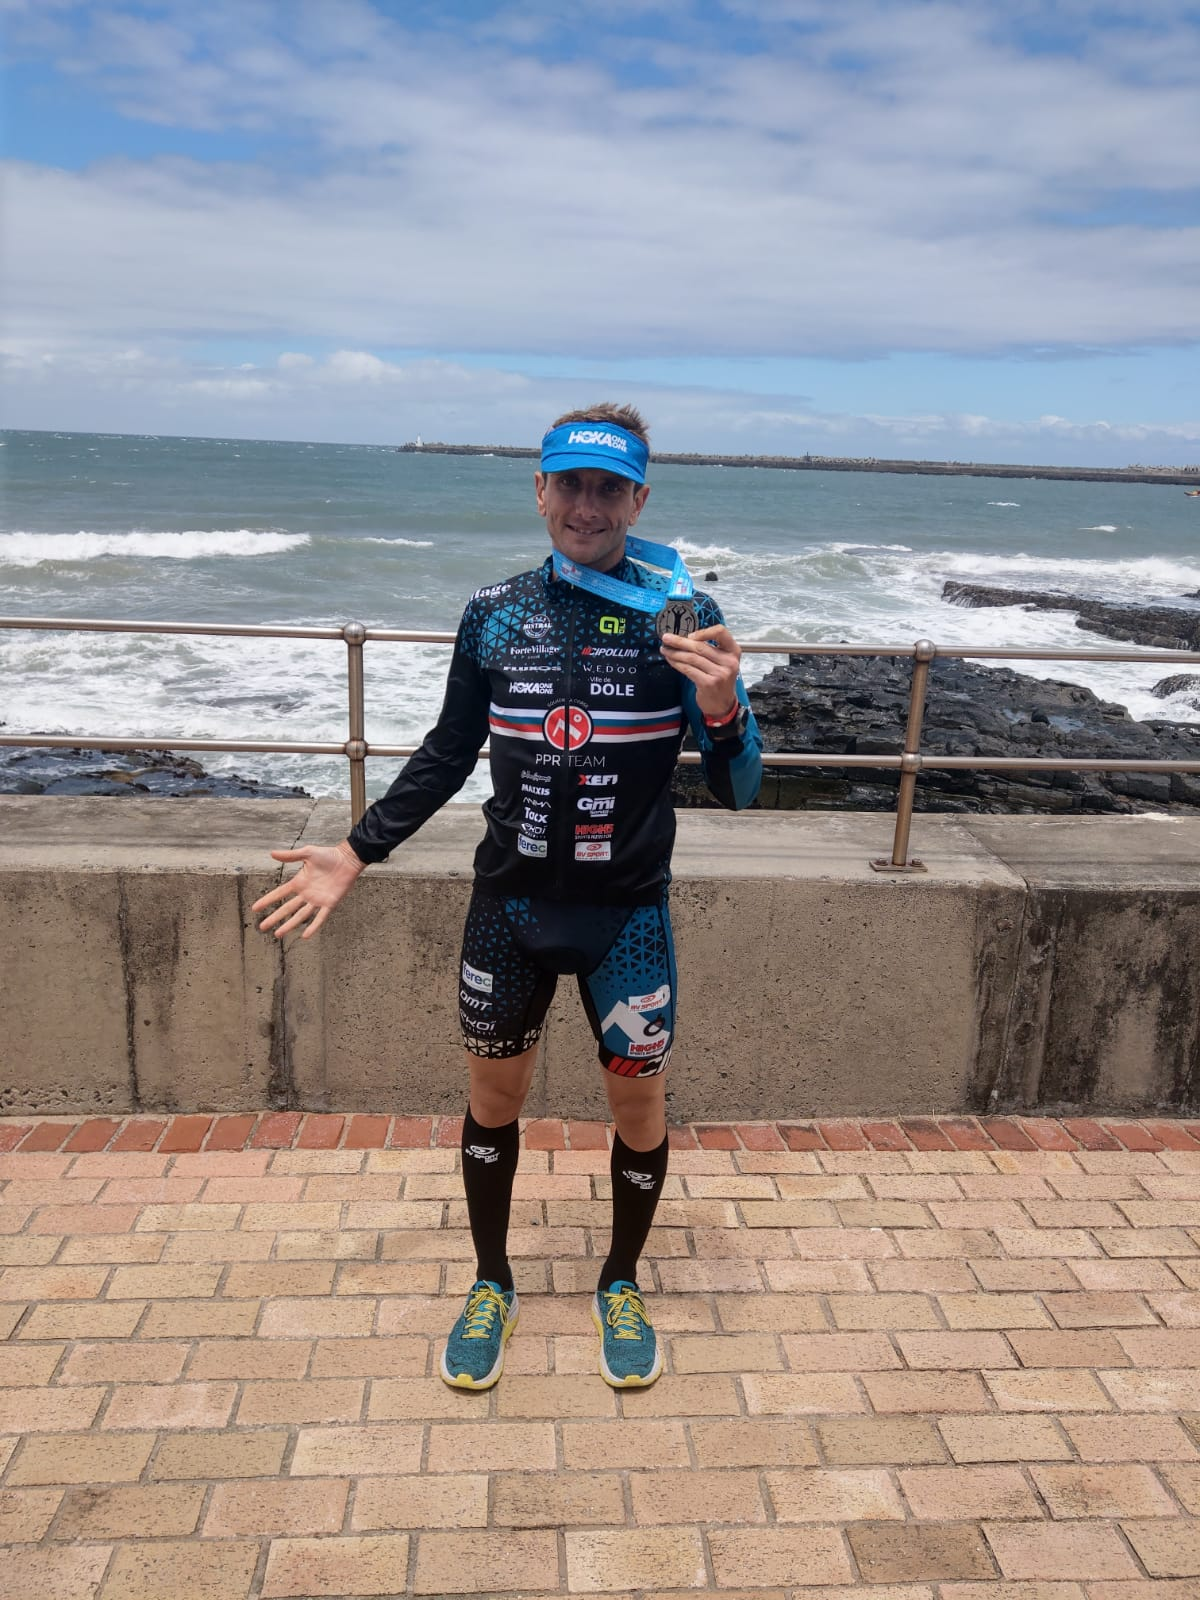 IRONMAN 70.3 Sudafrica, Cyril Viennot 4° classificato